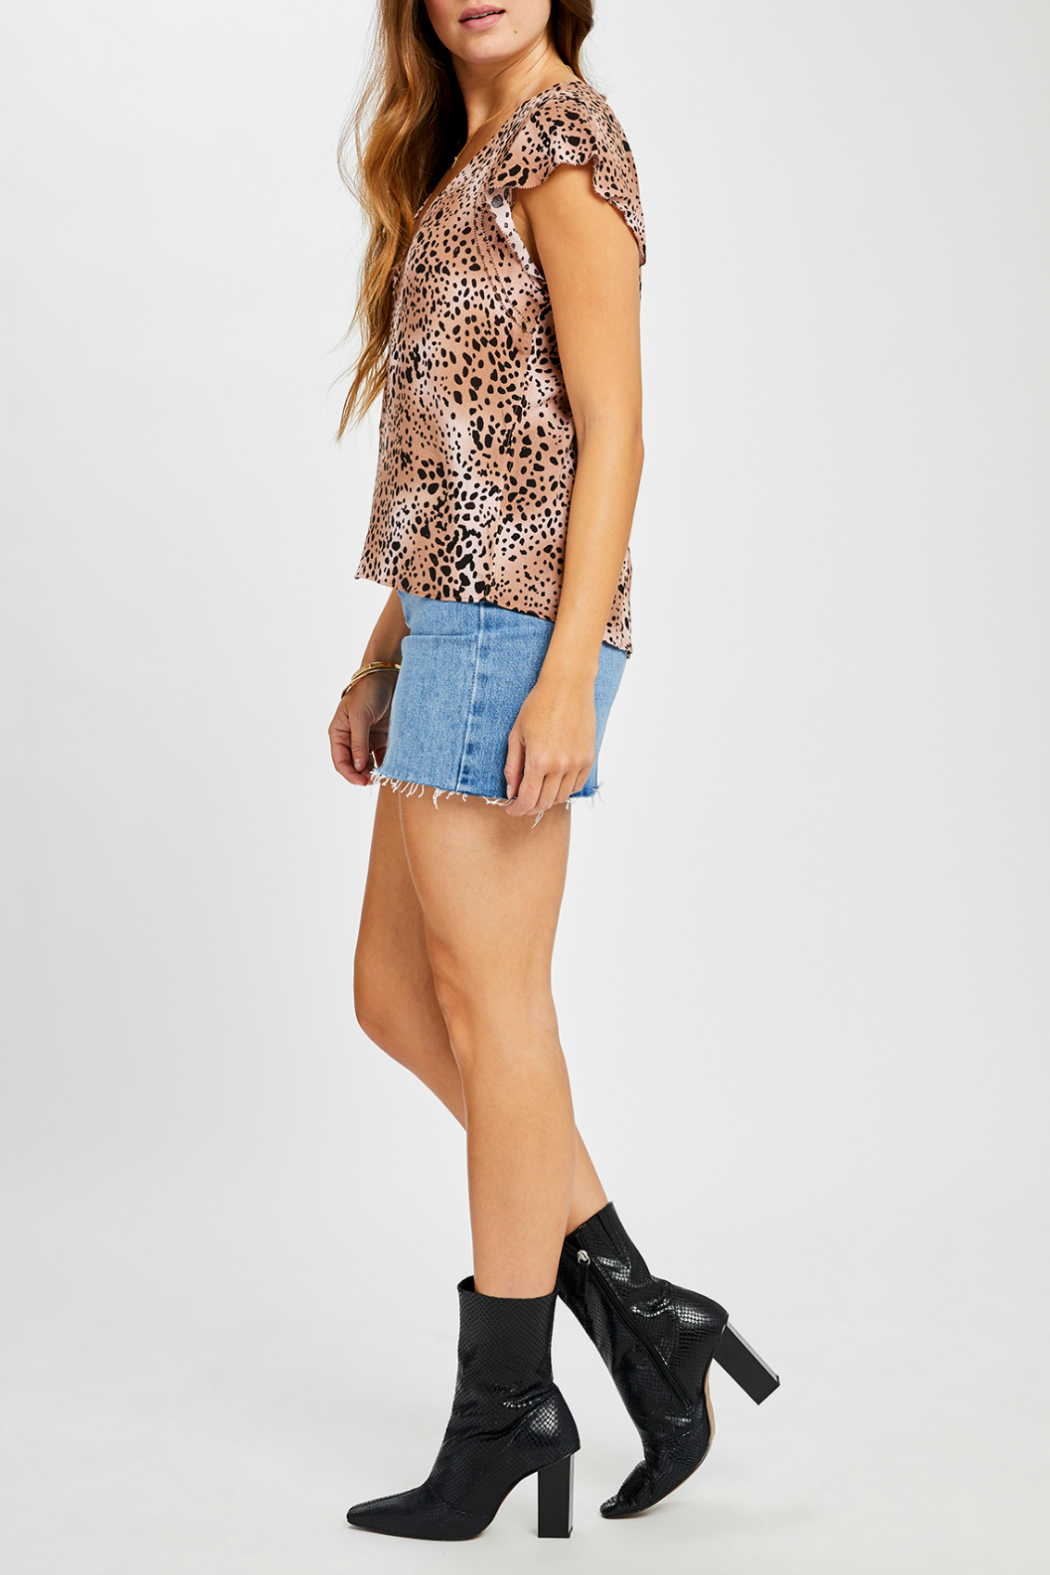 Gentle Fawn Claret V neck Animal Print Top - Front Full Image